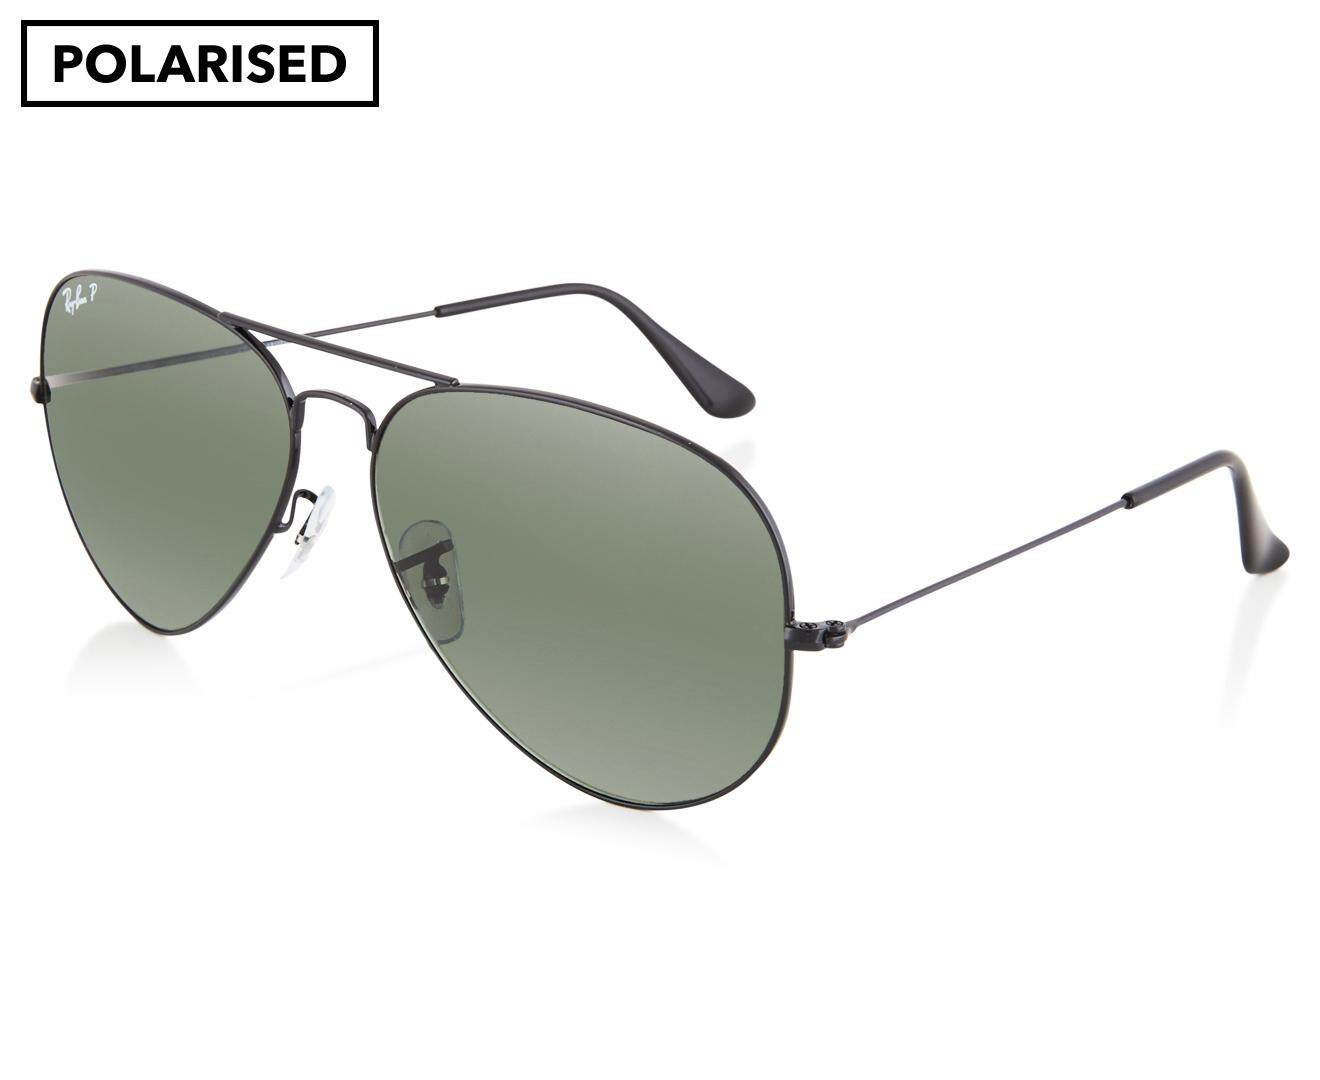 Accelera 17565 R14 Ban Mobil Black Daftar Harga Honda Jazz Brio Forceum N300 175 65 Ray Rb3025 Aviator Polarised Sunglasses Green